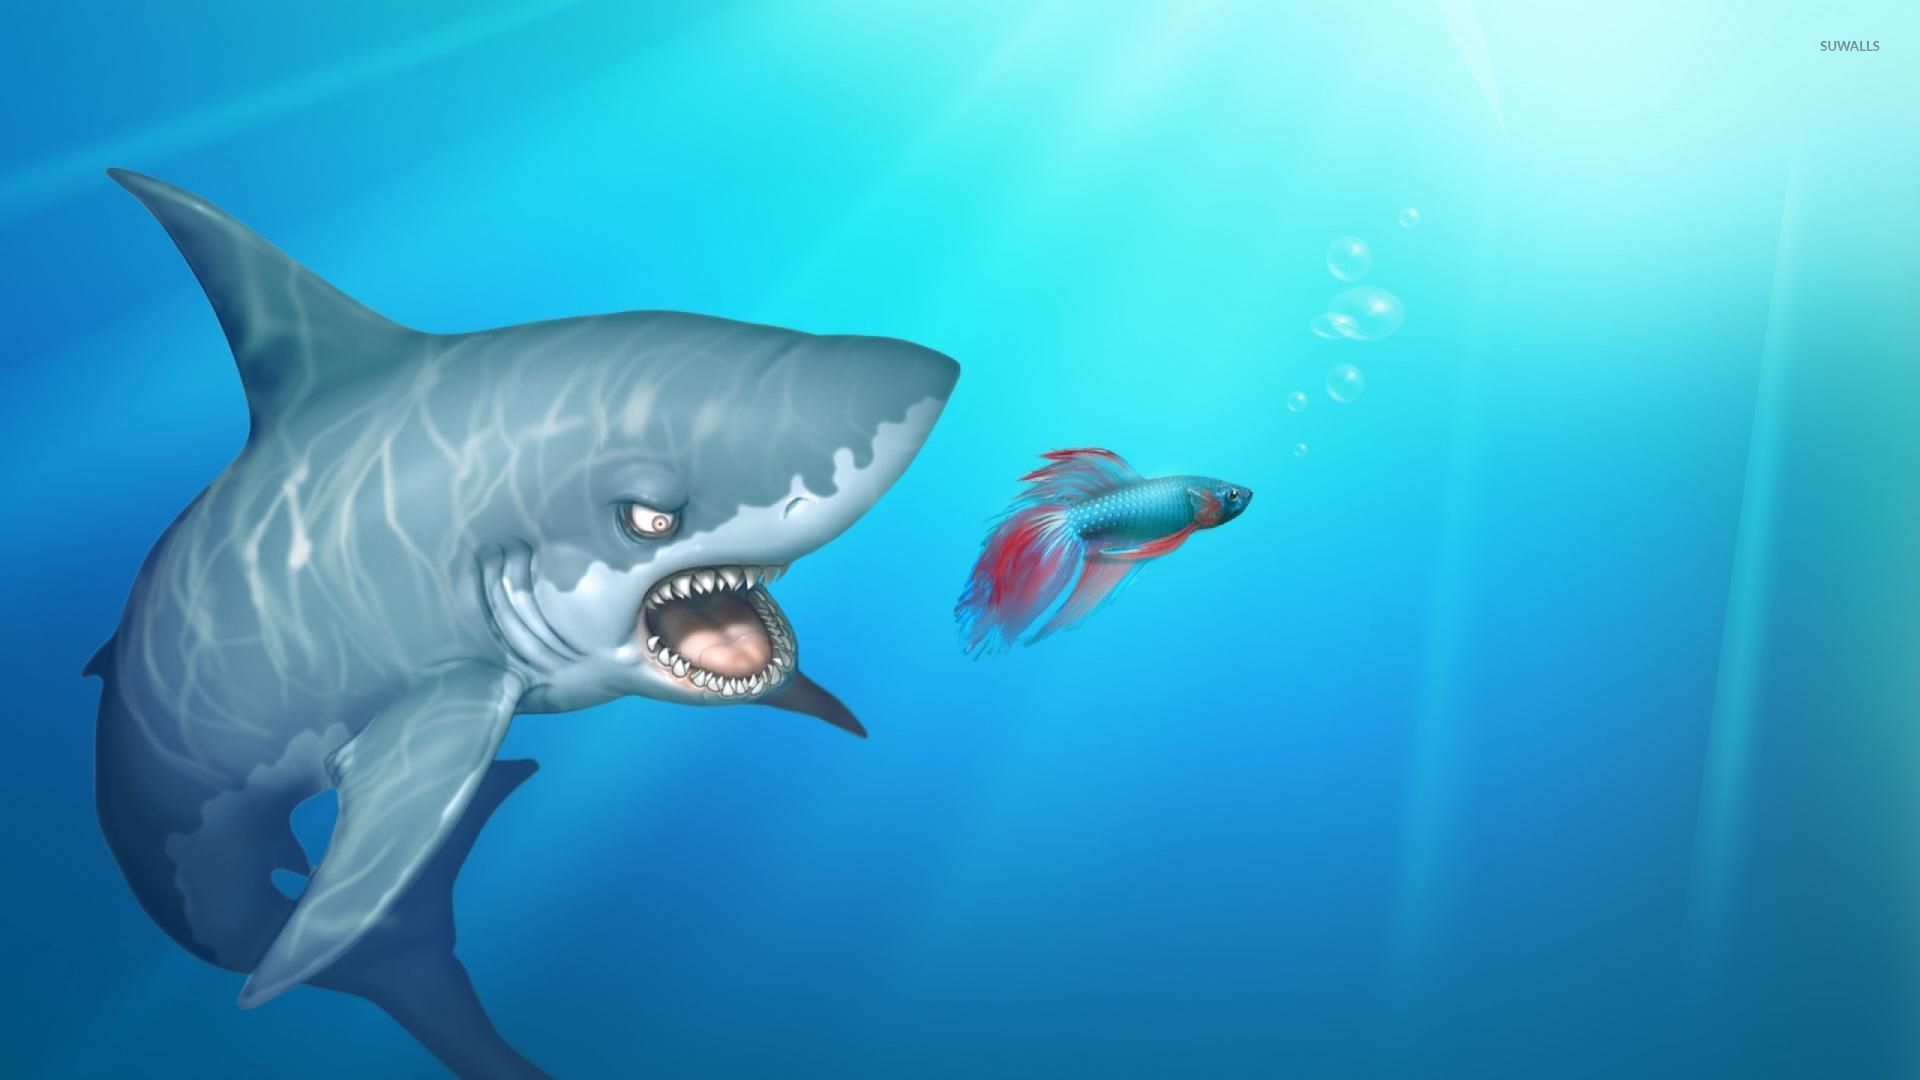 Shark after the fish wallpaper digital art wallpapers for How to shark fish